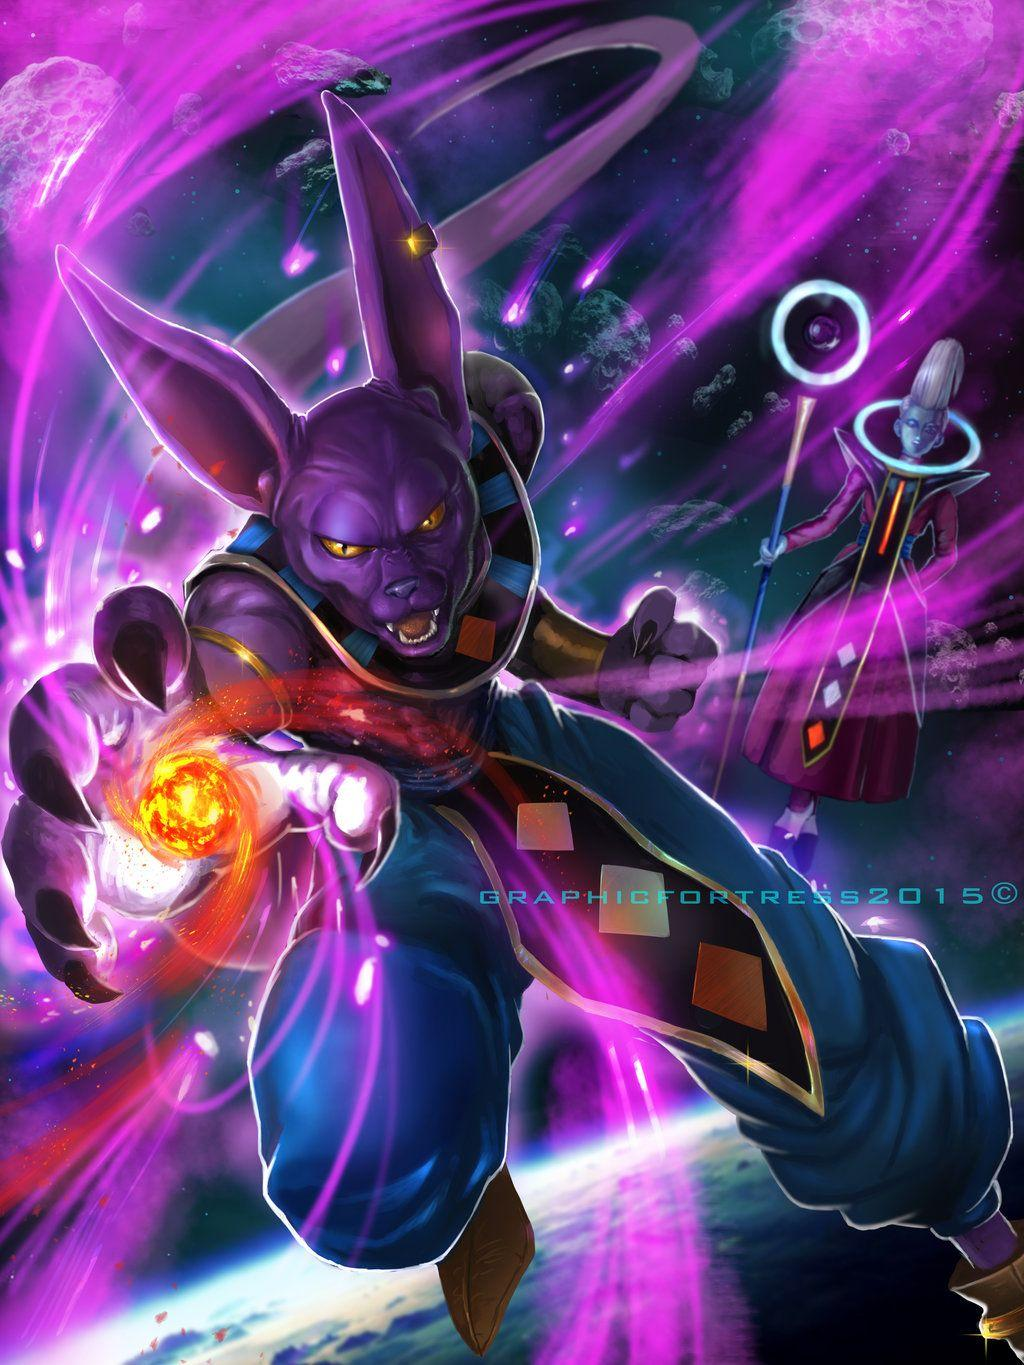 Lord Beerus Wallpapers Wallpaper Cave